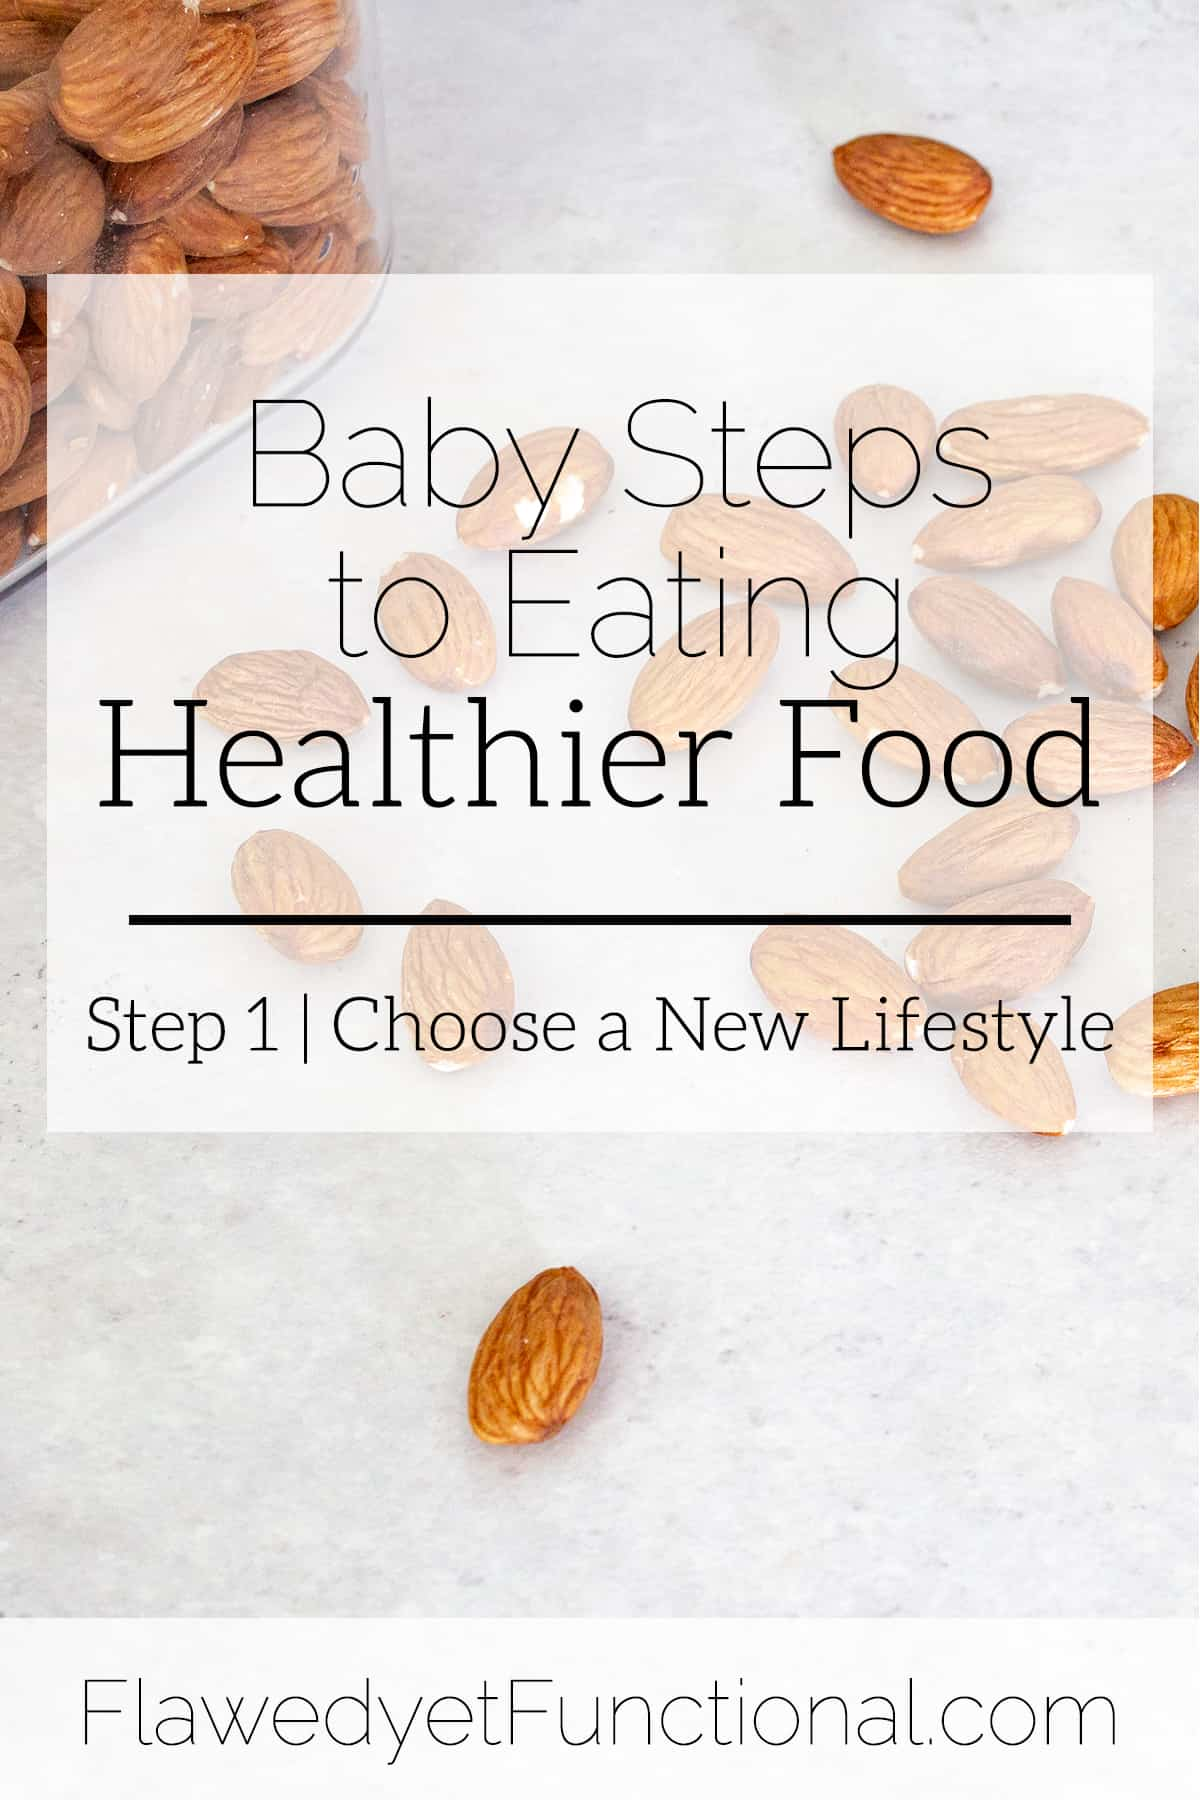 Baby Steps to Eating Healthier Food | Choose a New Lifestyle